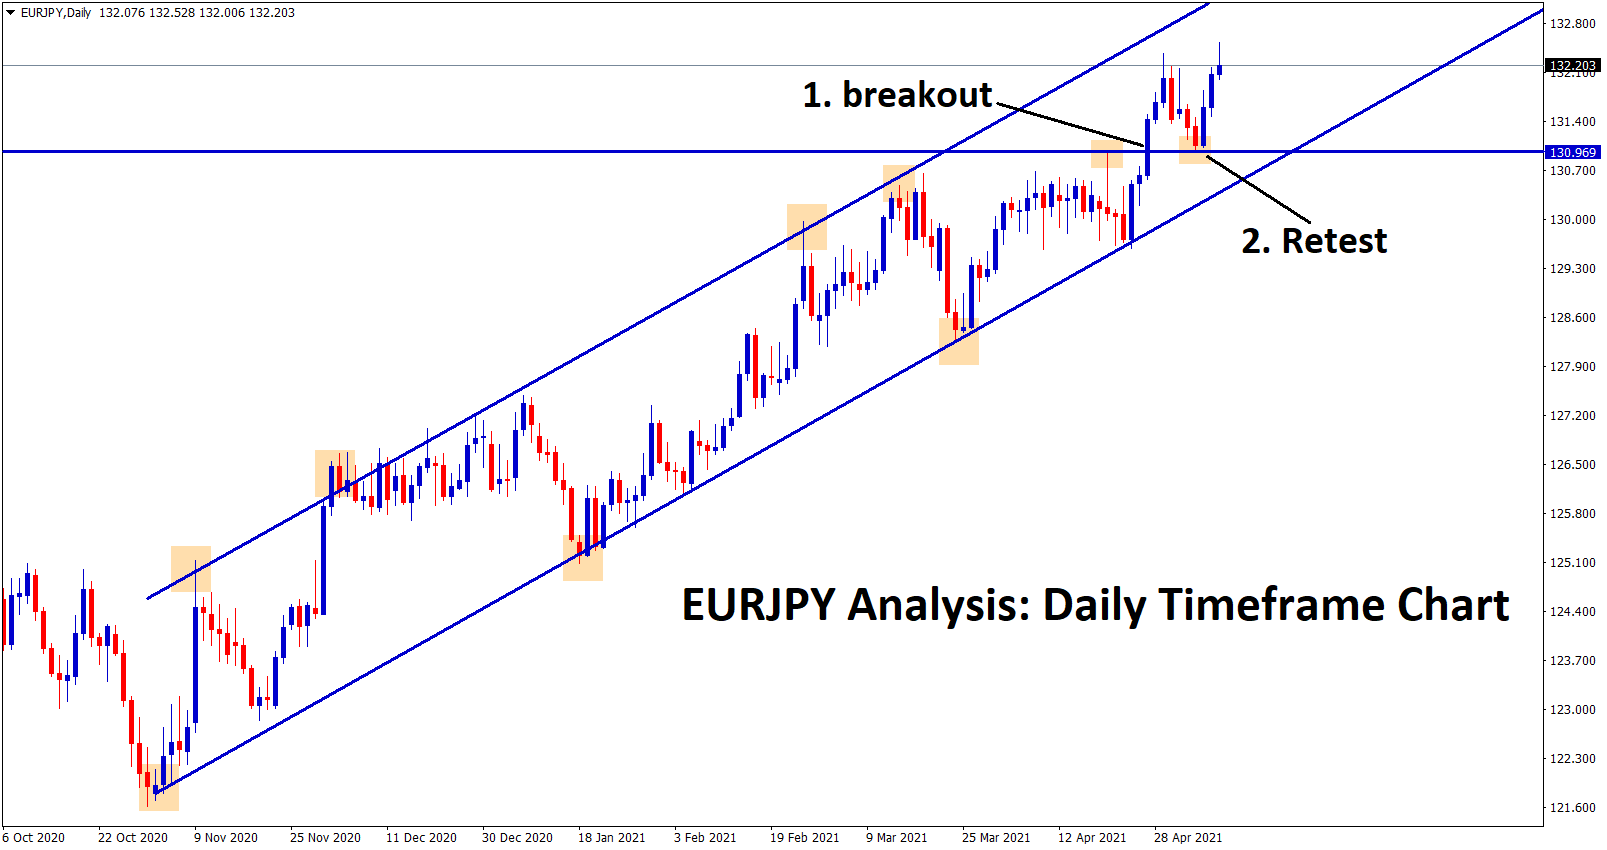 EURJPY is moving in an uptrend ascending channel Recently price has retested the btoken level